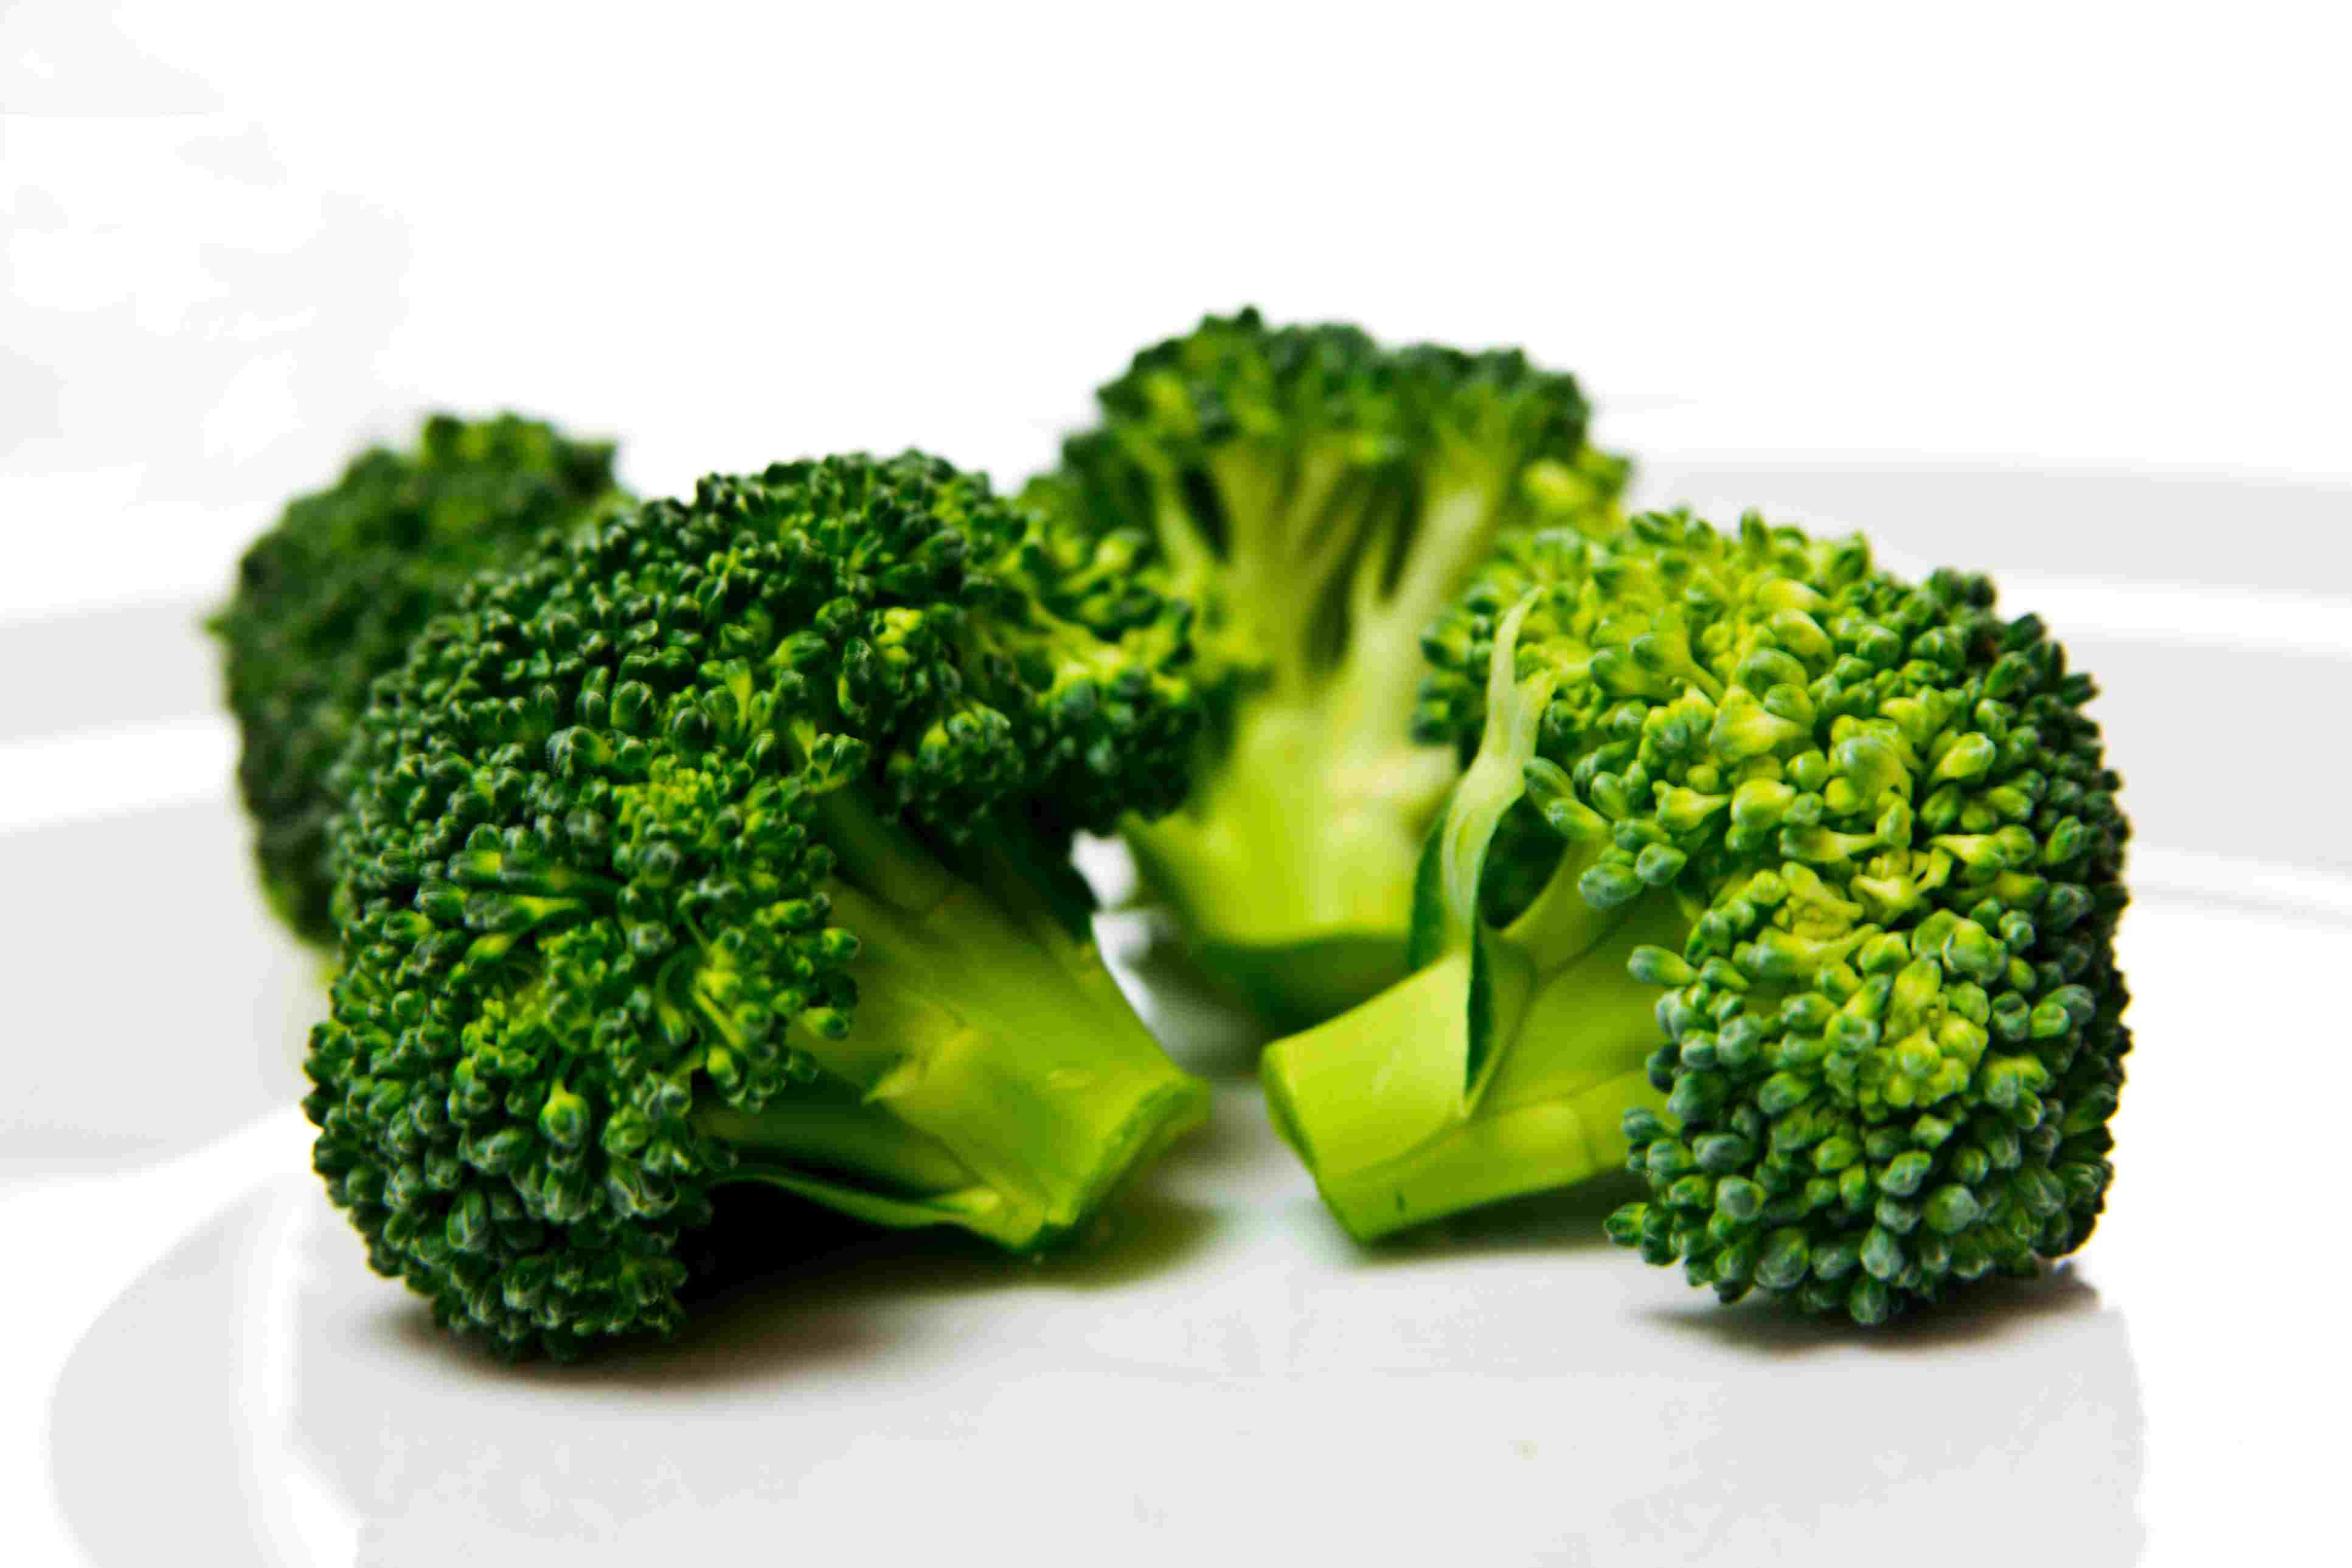 Best Sources for IBS-Friendly Soluble Fiber